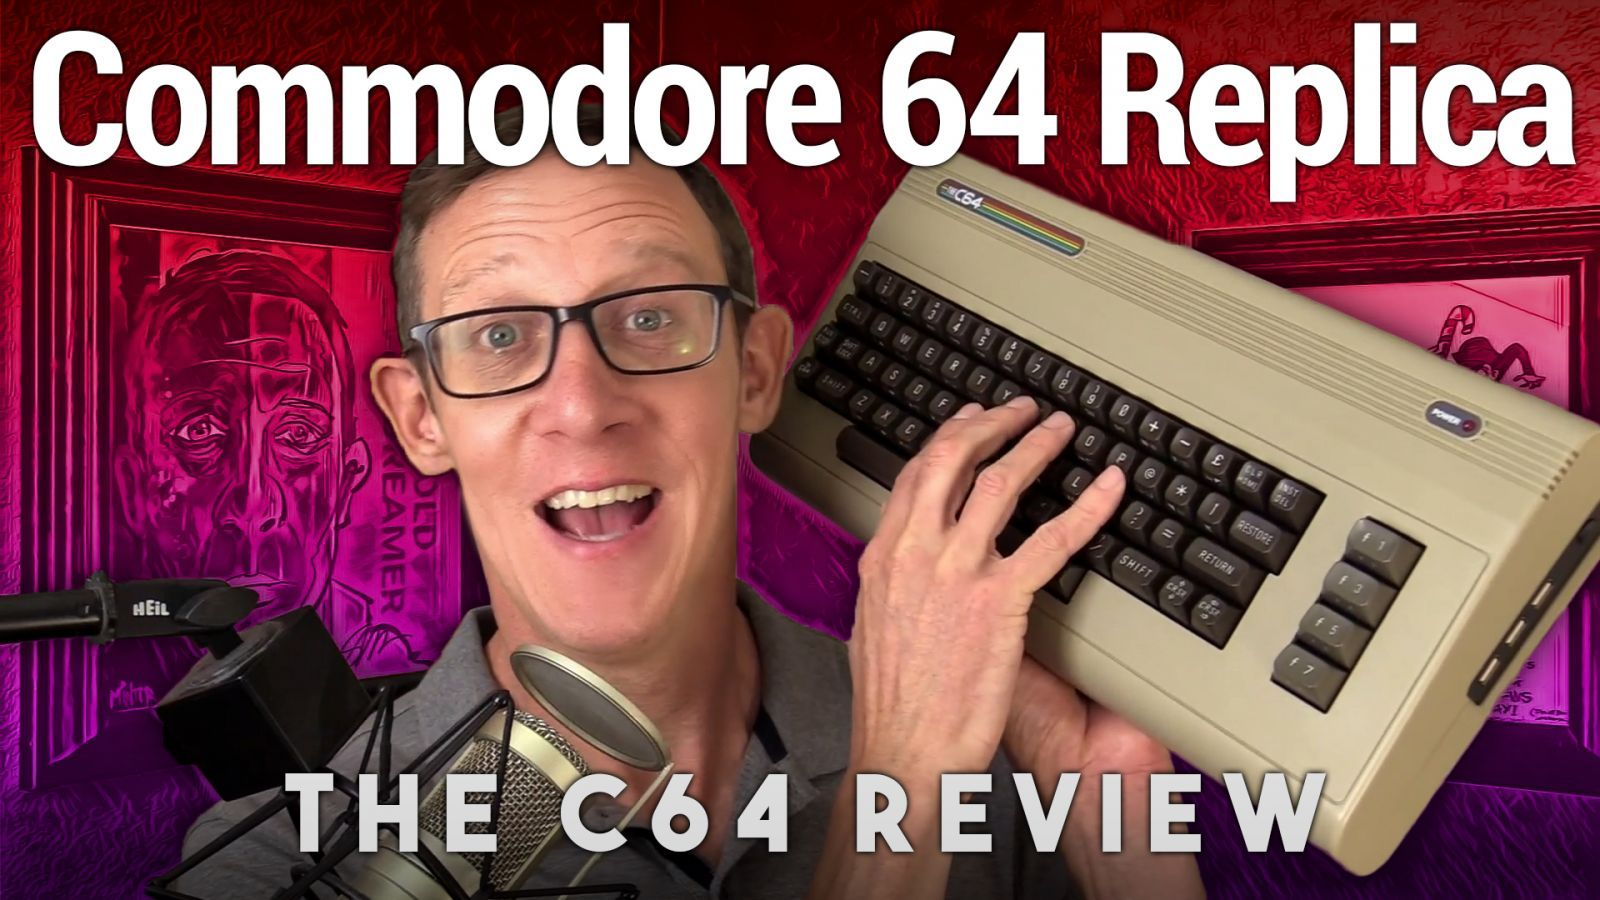 The C64 'Maxi' Review - Full-Sized Commodore 64 Replica